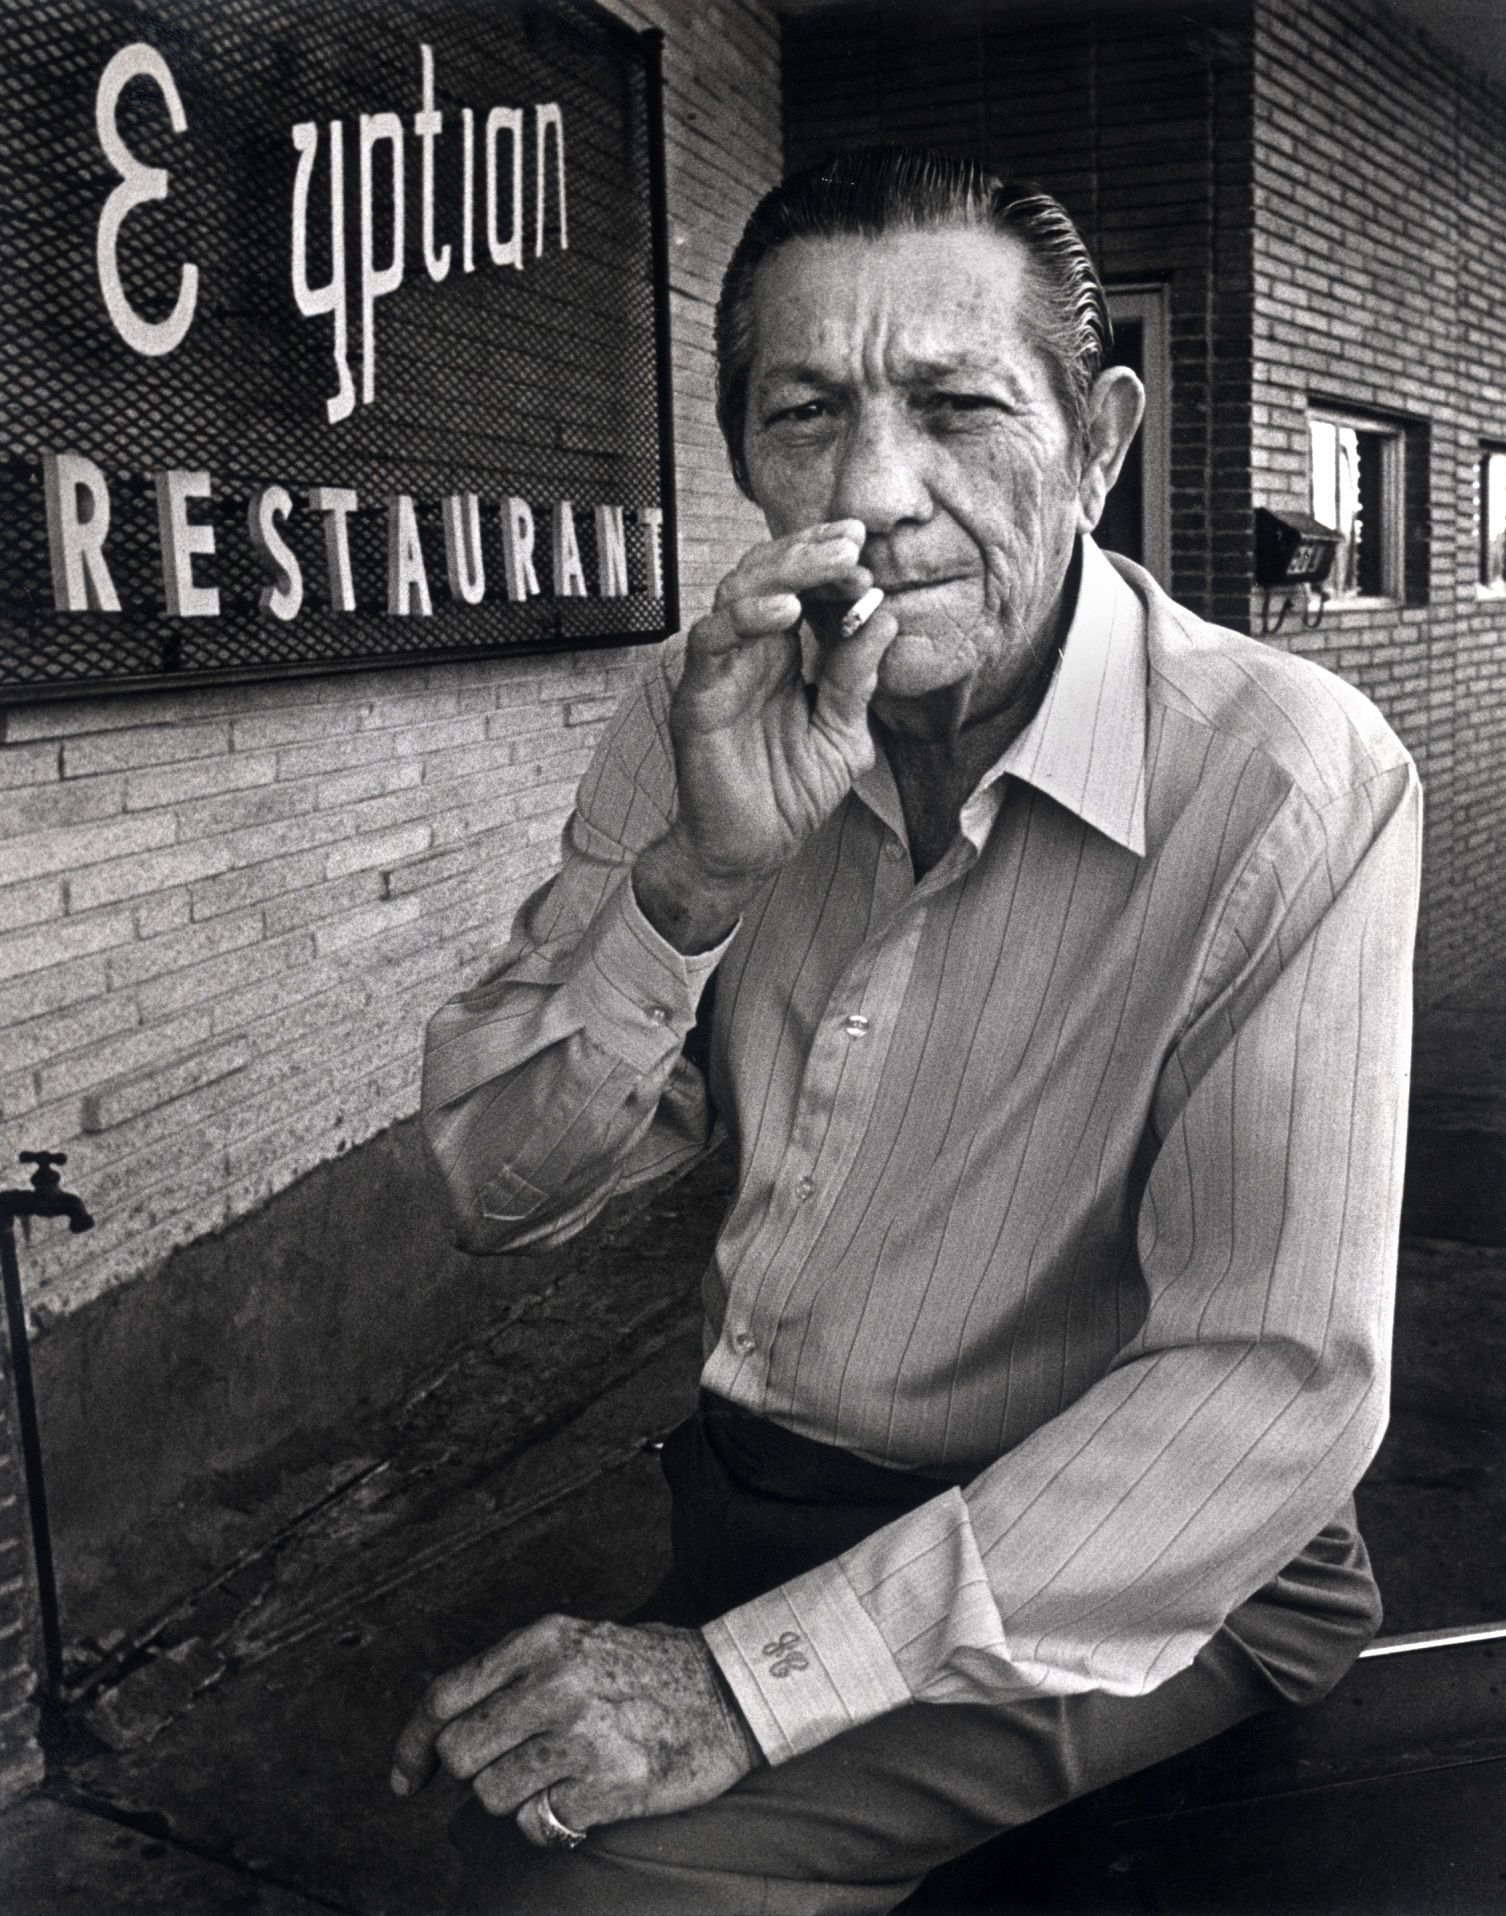 Joe Campisi is shown in front of his restaurant on Mockingbird Lane in November 1982.